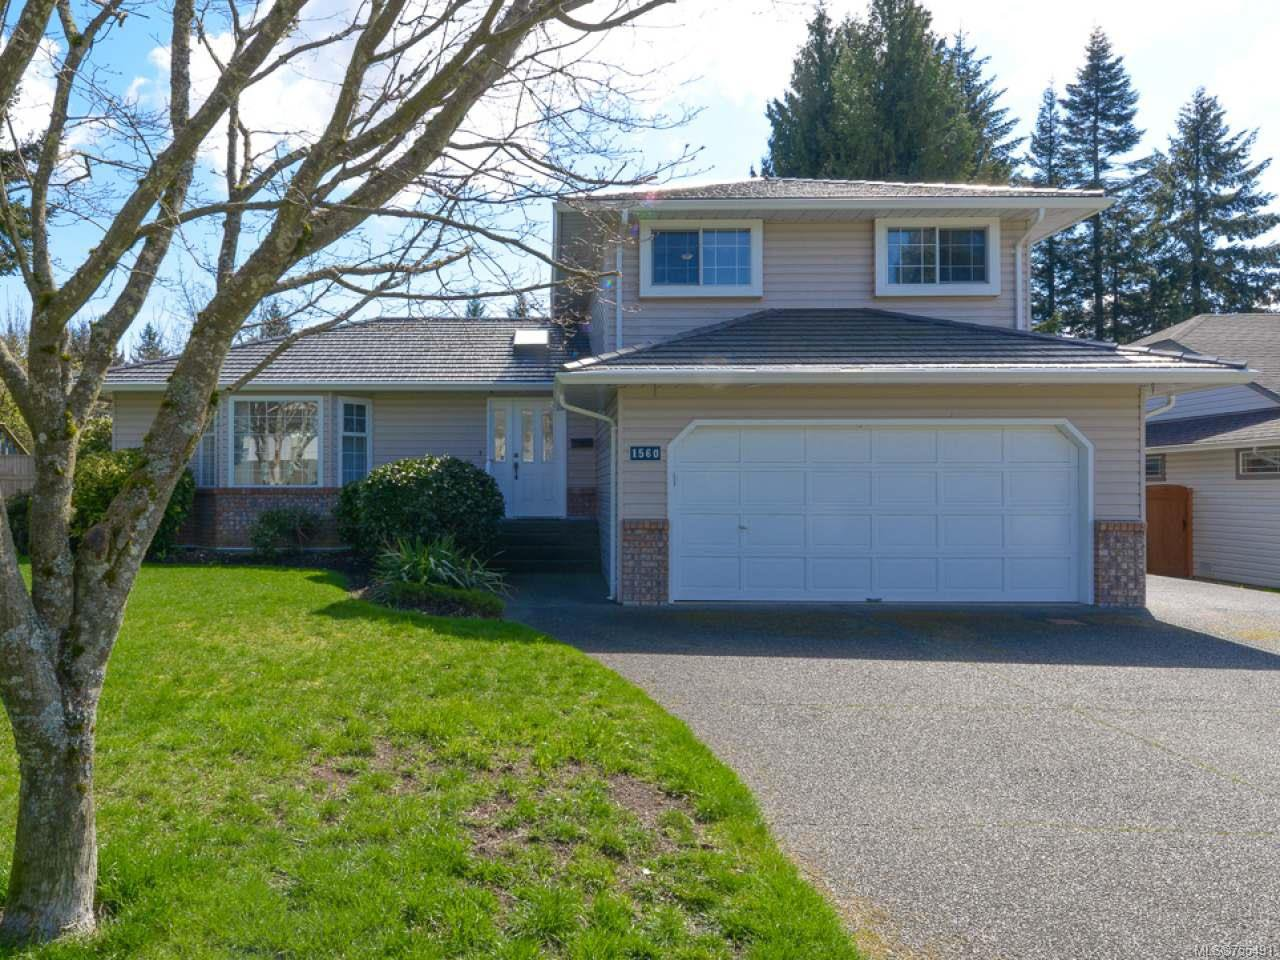 Main Photo: 1560 Beaconsfield Cres in COMOX: CV Comox (Town of) House for sale (Comox Valley)  : MLS®# 755491